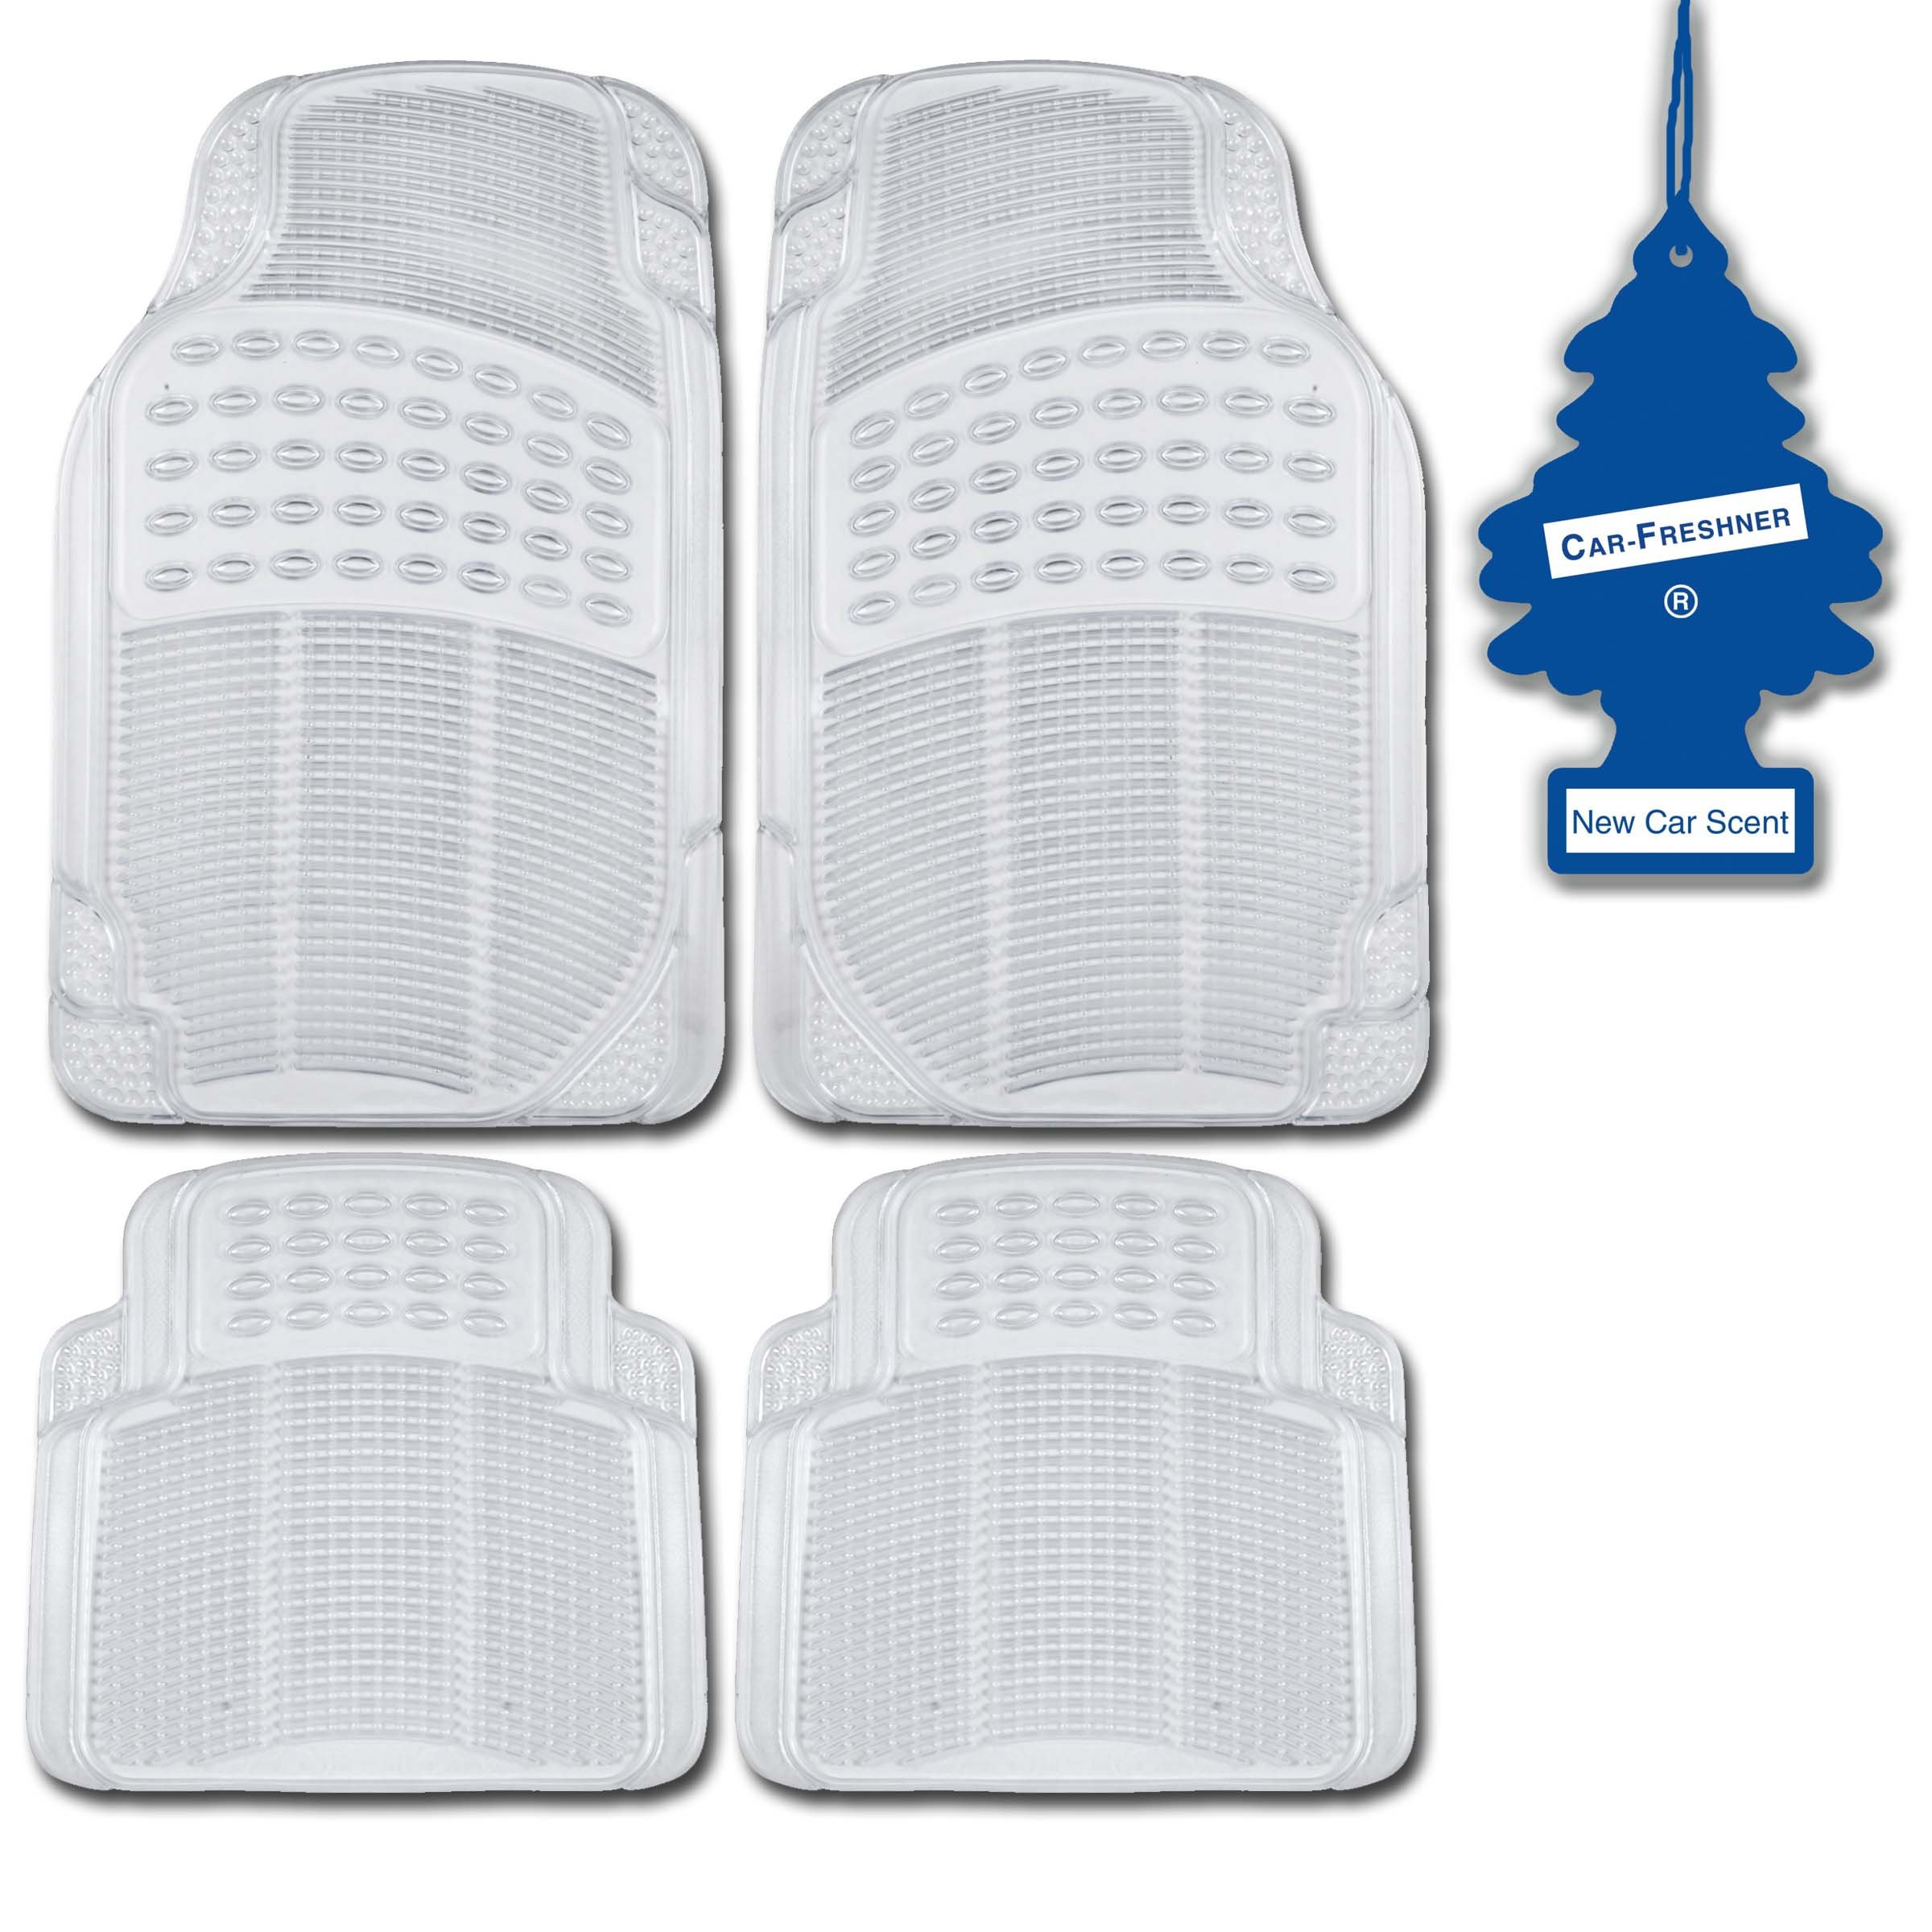 Heavy Duty Rubber Clear MotorTrend 4 Pc Car Floor Mats Set All Weather + NewCar